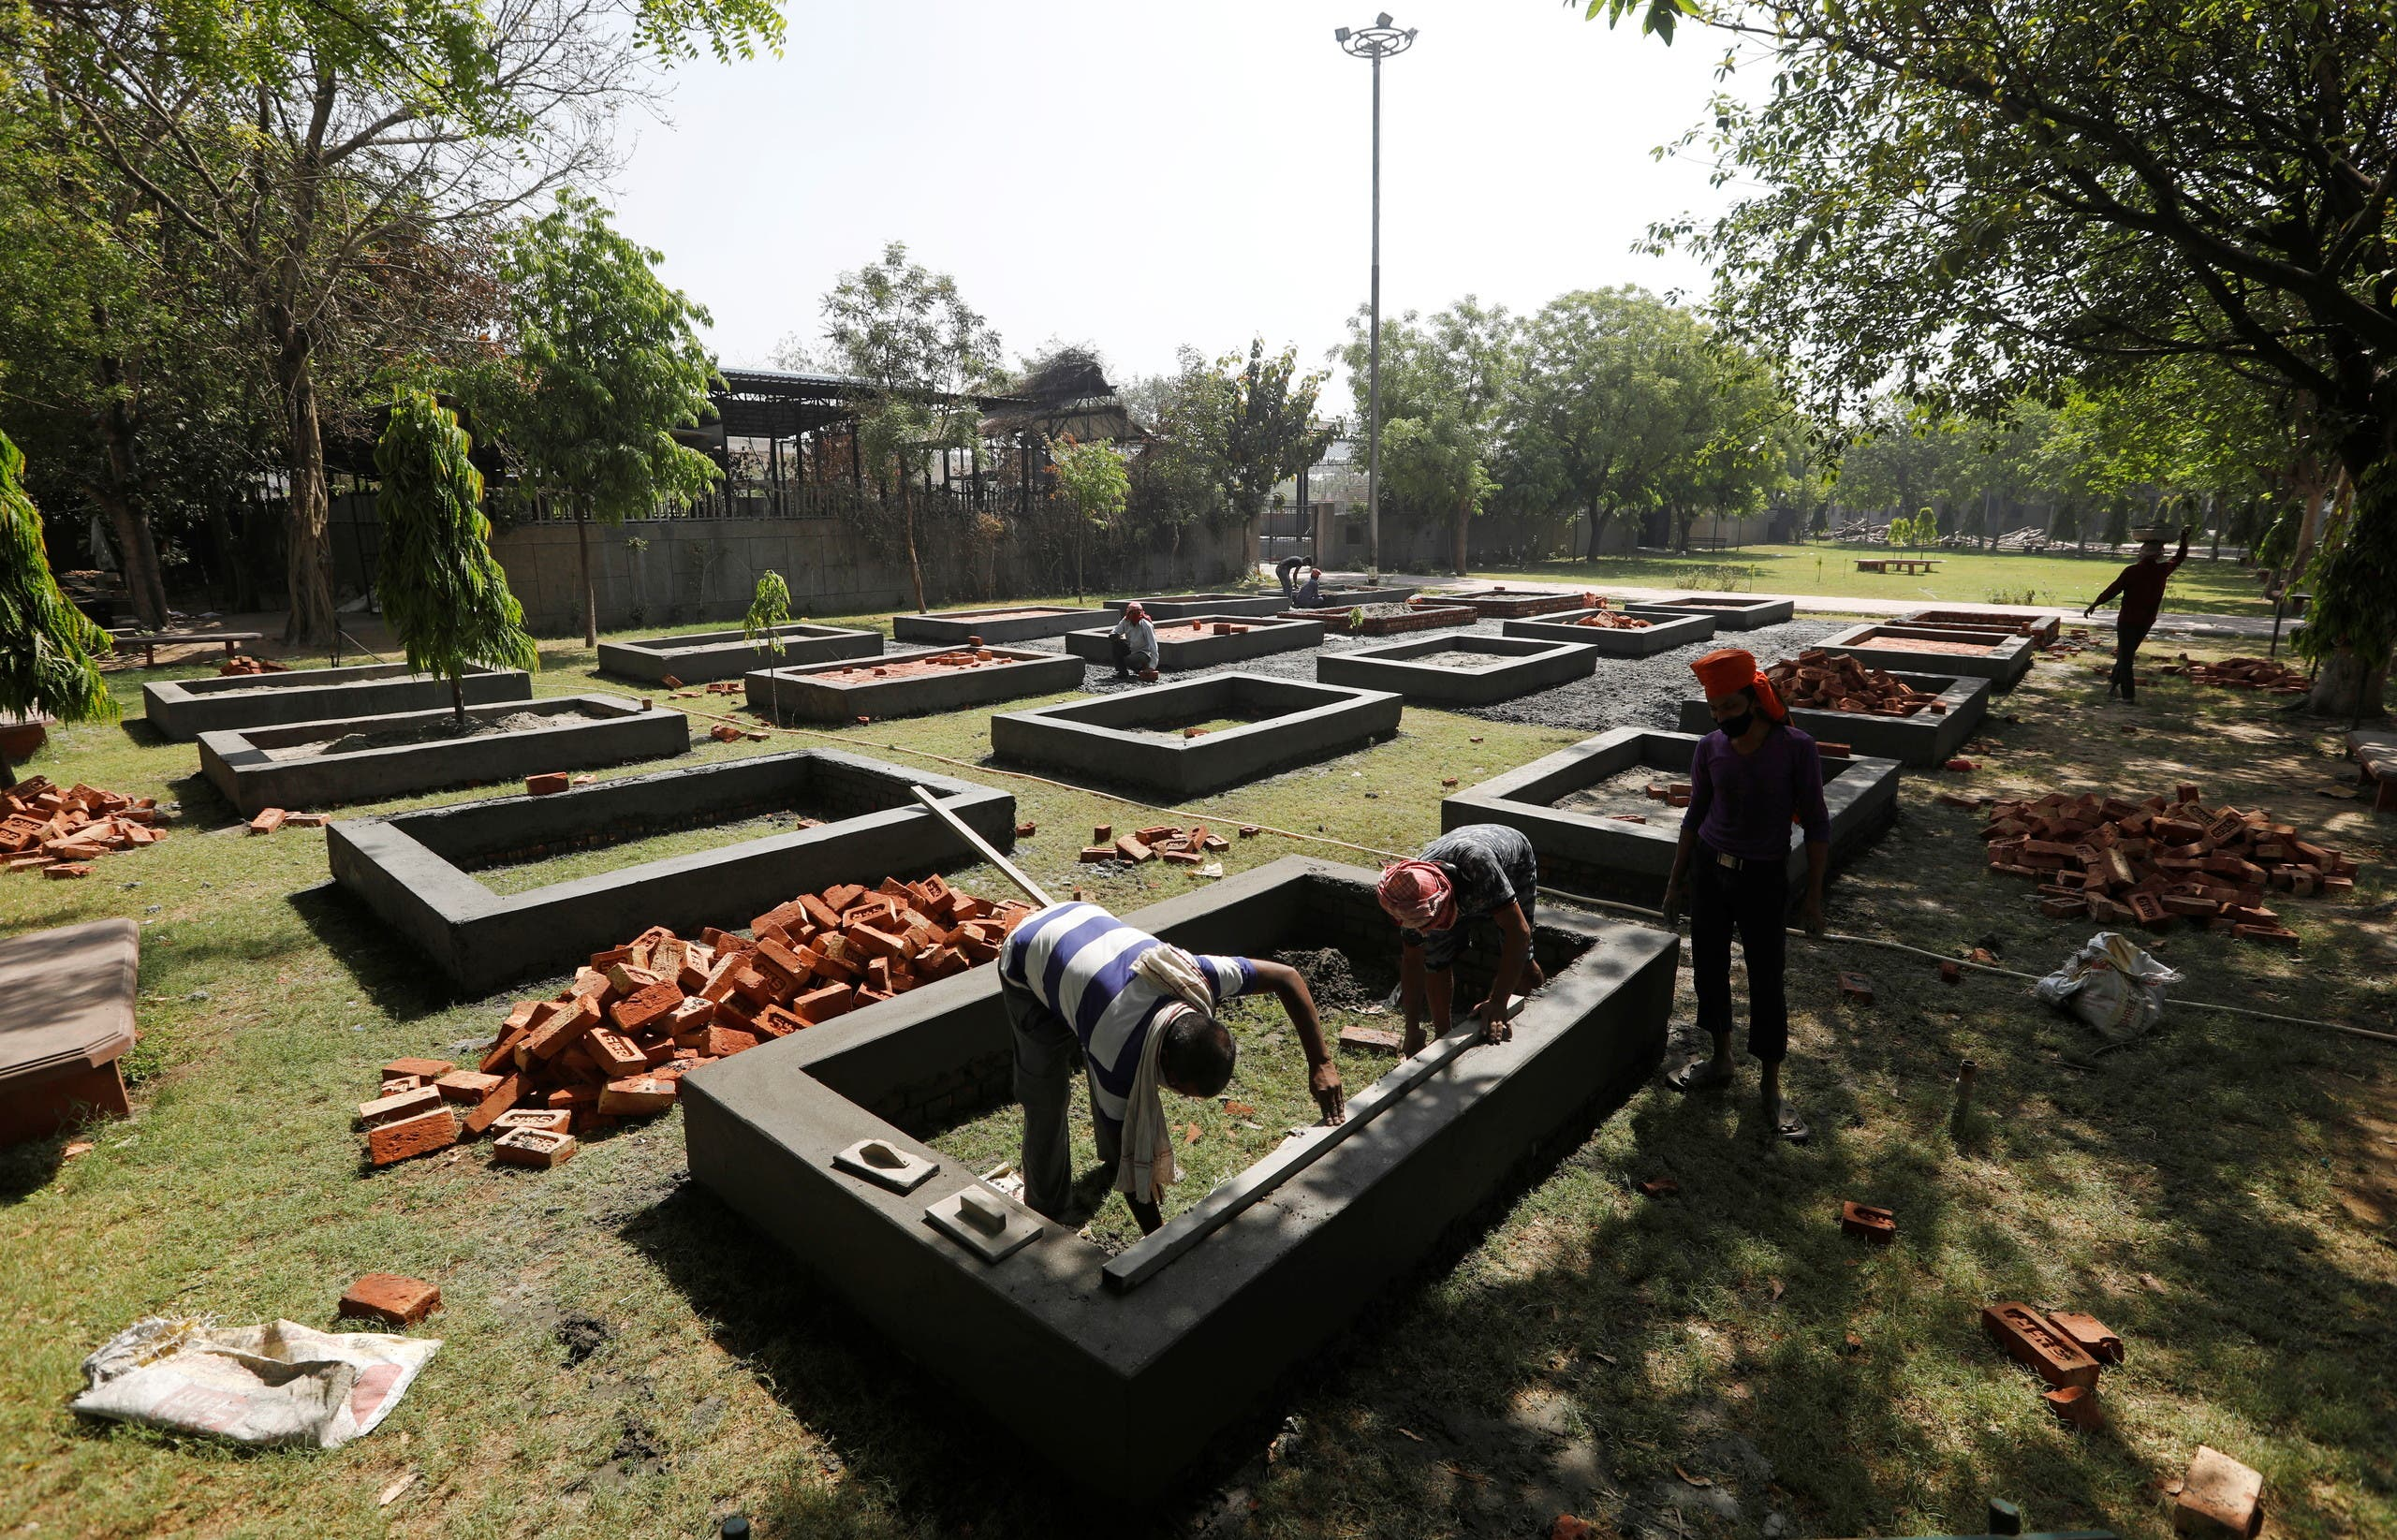 Workers build new platforms to cremate bodies inside a crematorium, amid the spread of the coronavirus disease (COVID-19) in New Delhi, India, April 26, 2021. (Reuters)